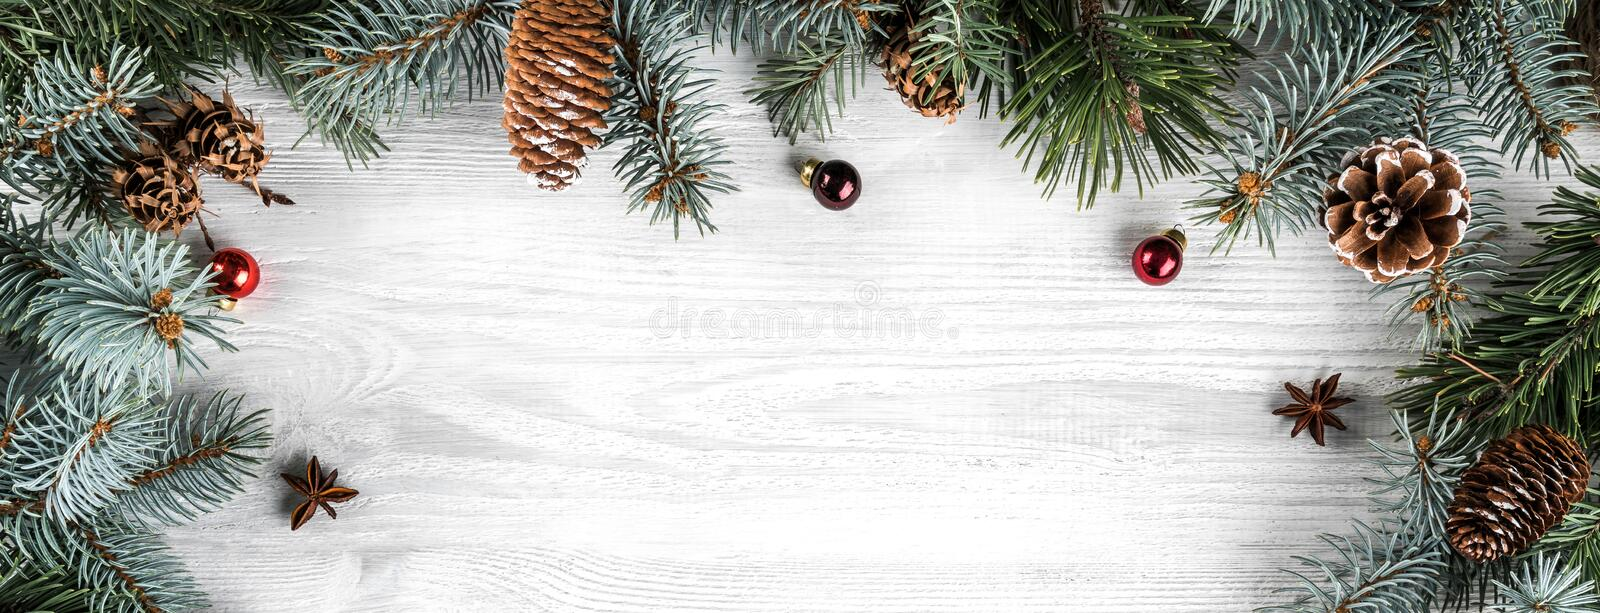 Creative frame made of Christmas fir branches on white wooden background with red decoration royalty free stock images